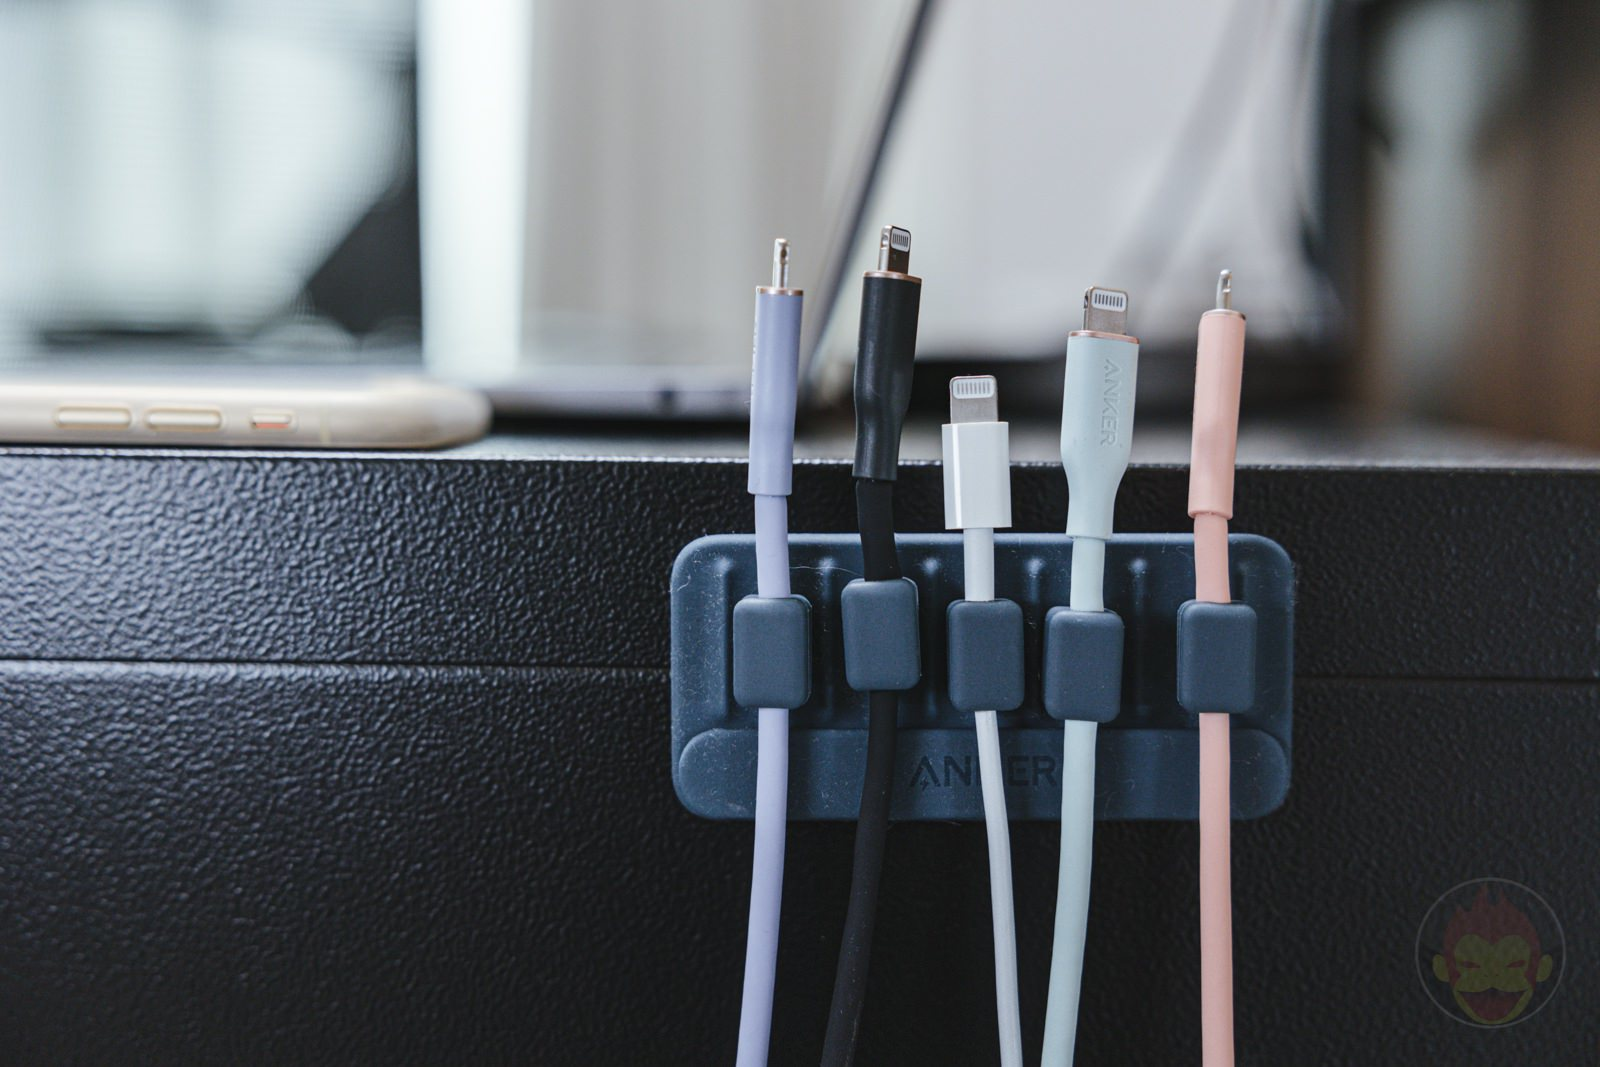 Anker-Magnetic-Cable-Holder-Review-06